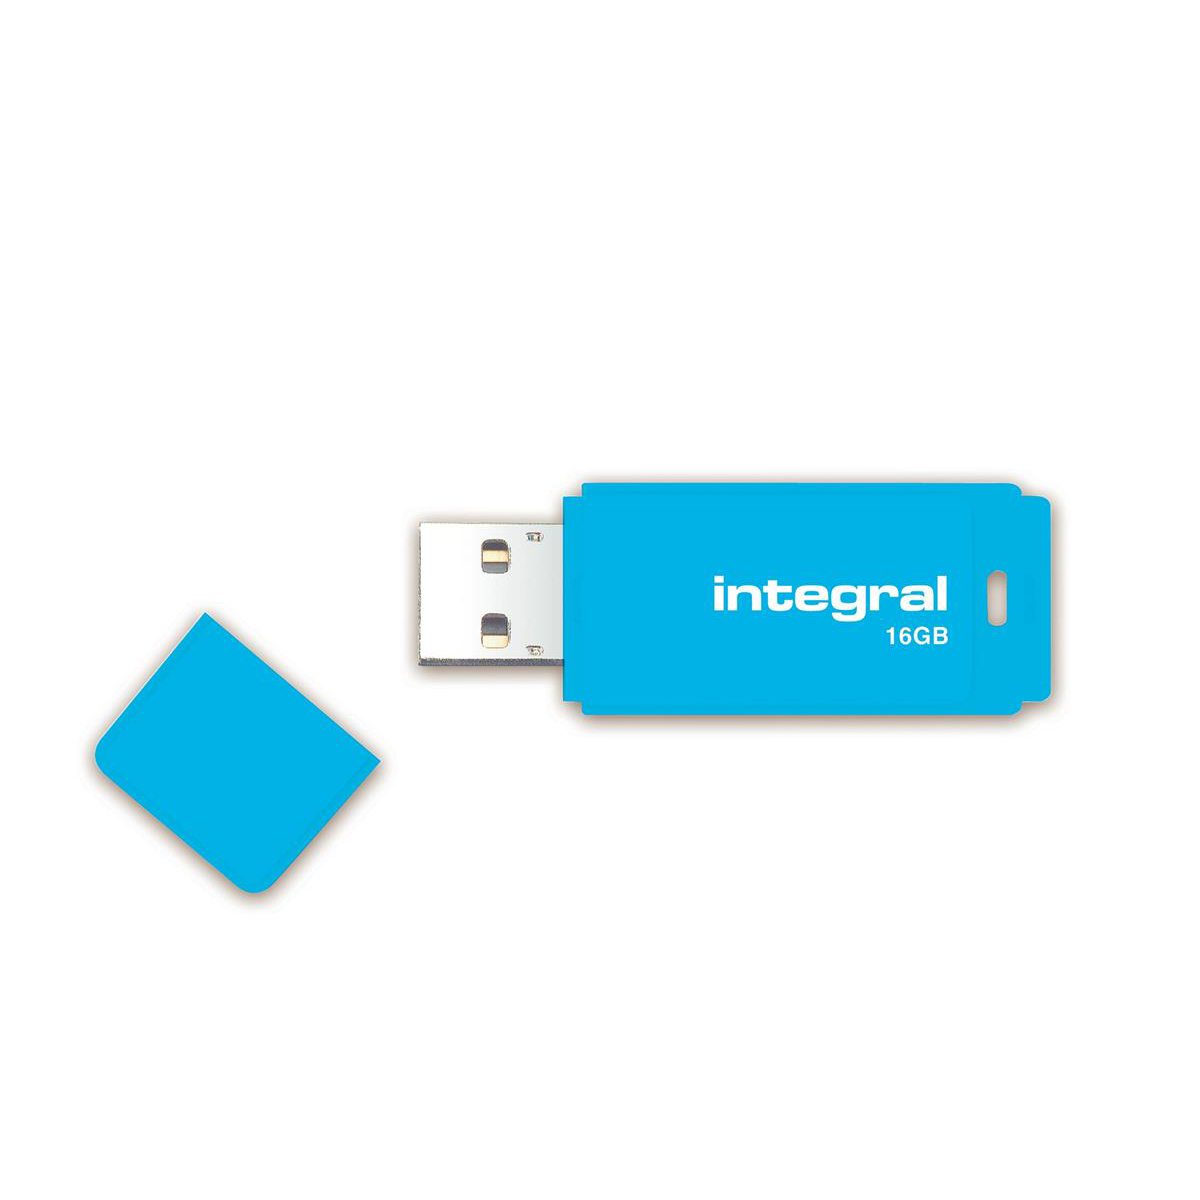 Memory Sticks Integral Neon USB Drive 2.0 Capacity 16GB Blue Ref INFD16GBNEONB